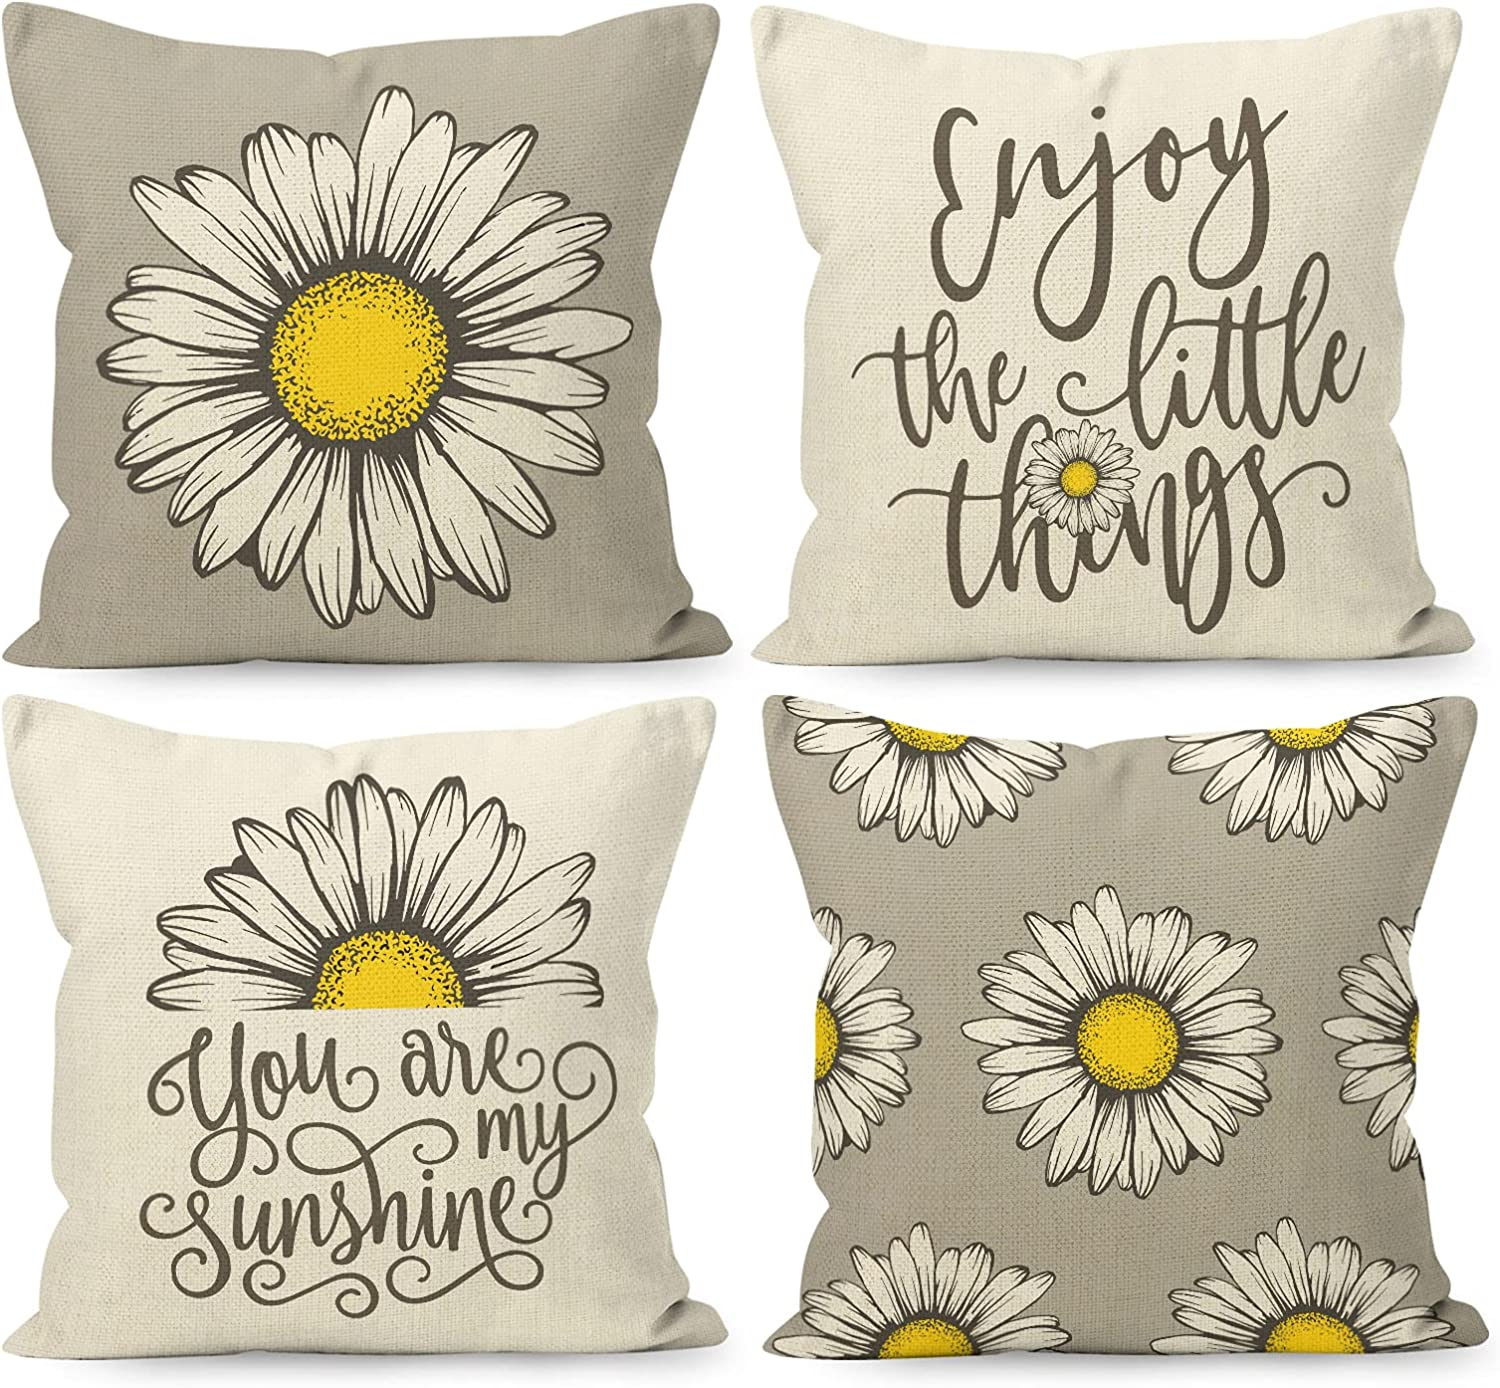 YUEMAYLY Farmhouse Summer Flower Daisy Floral You are My Sunshine Grey Linen Throw Pillow Covers 18 x 18 Inch Set of 4, Daisy Lover Gifts for Home Room Bed Sofa Decorations Decor